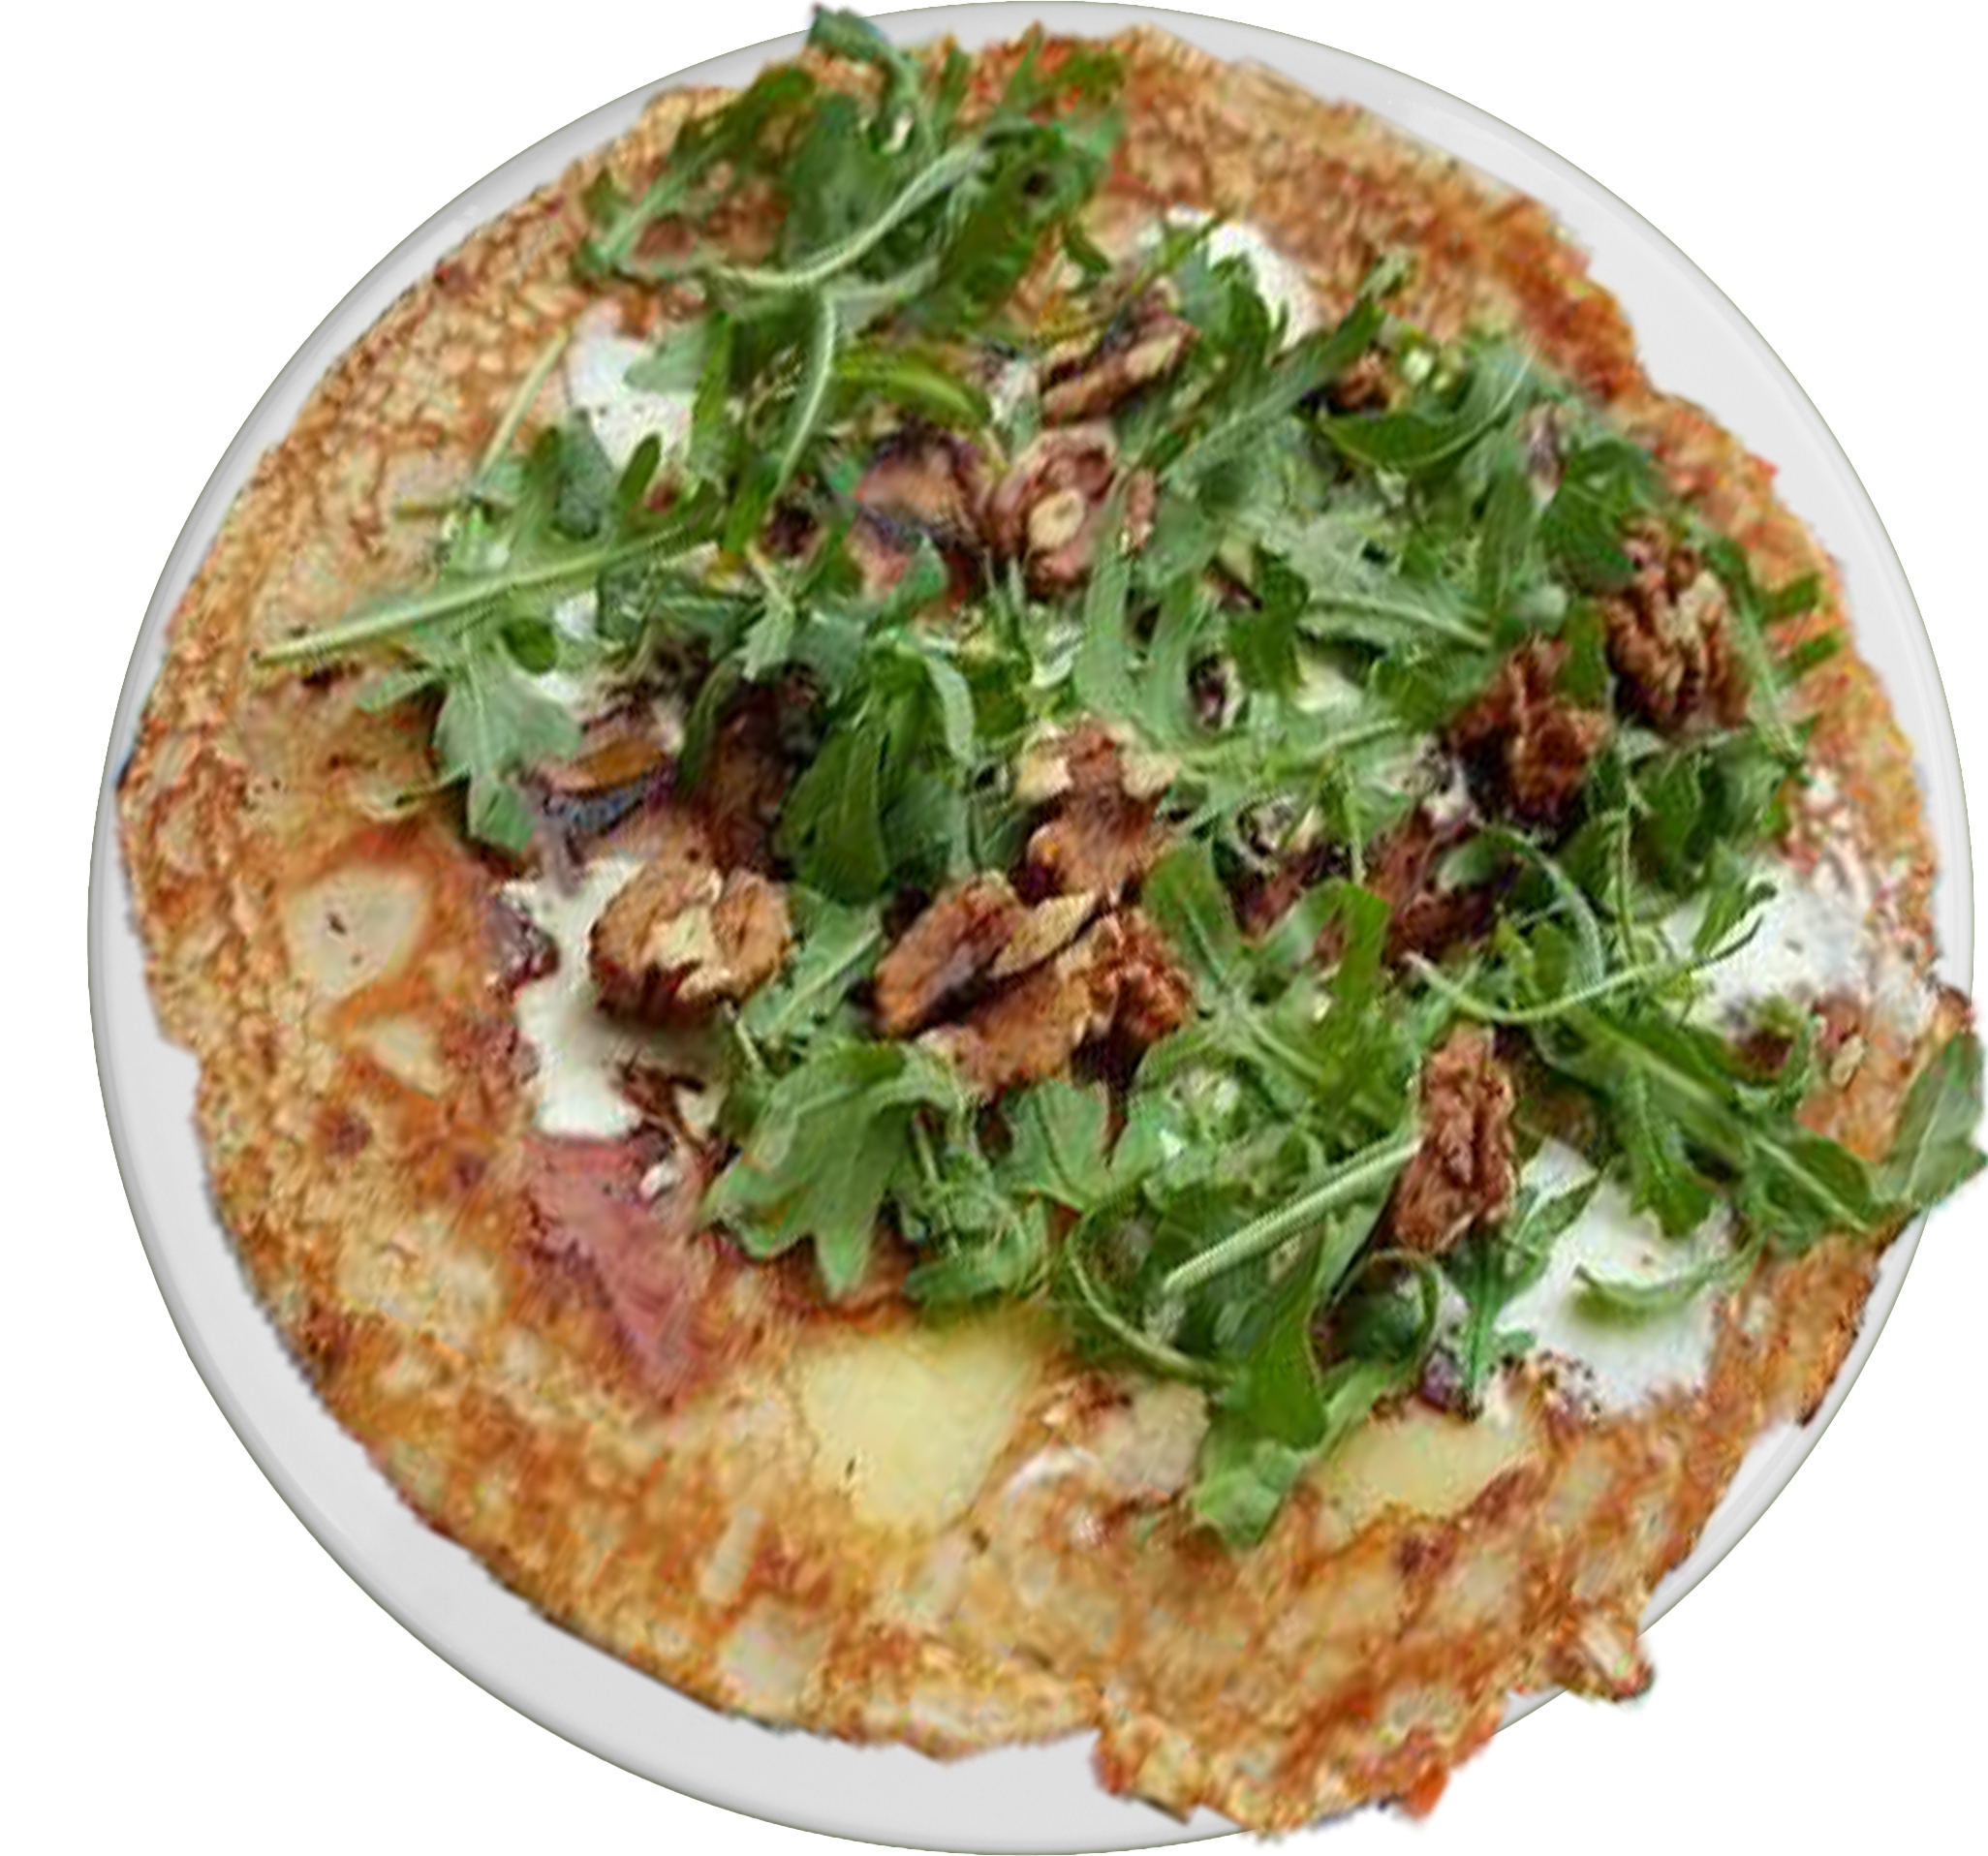 Rucola walnoot pannenkoek